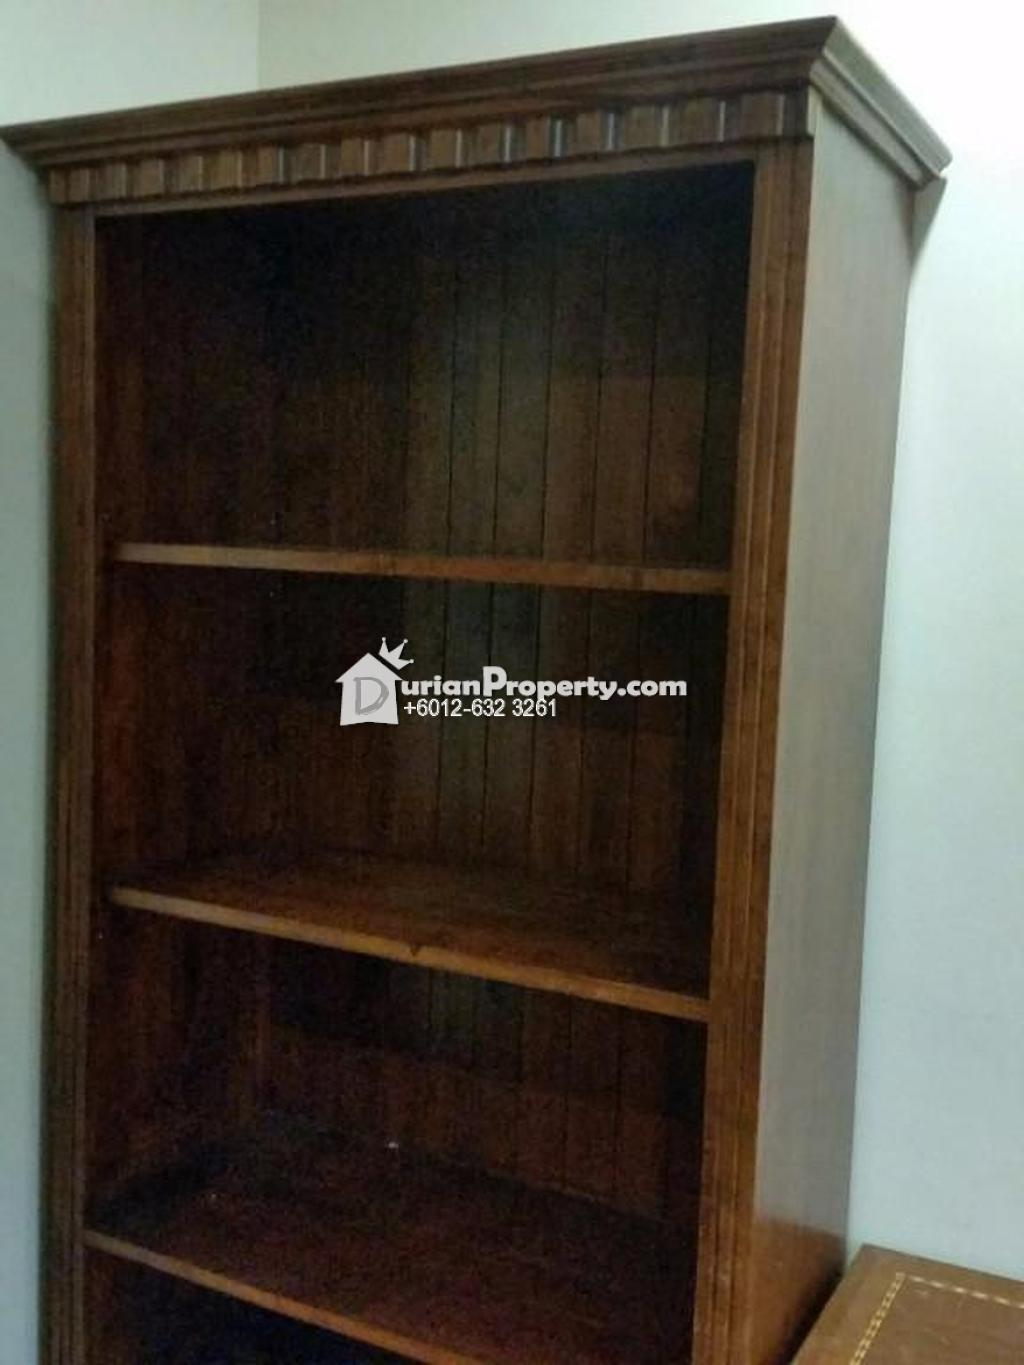 Book Shelves and Display Shelf For Sale